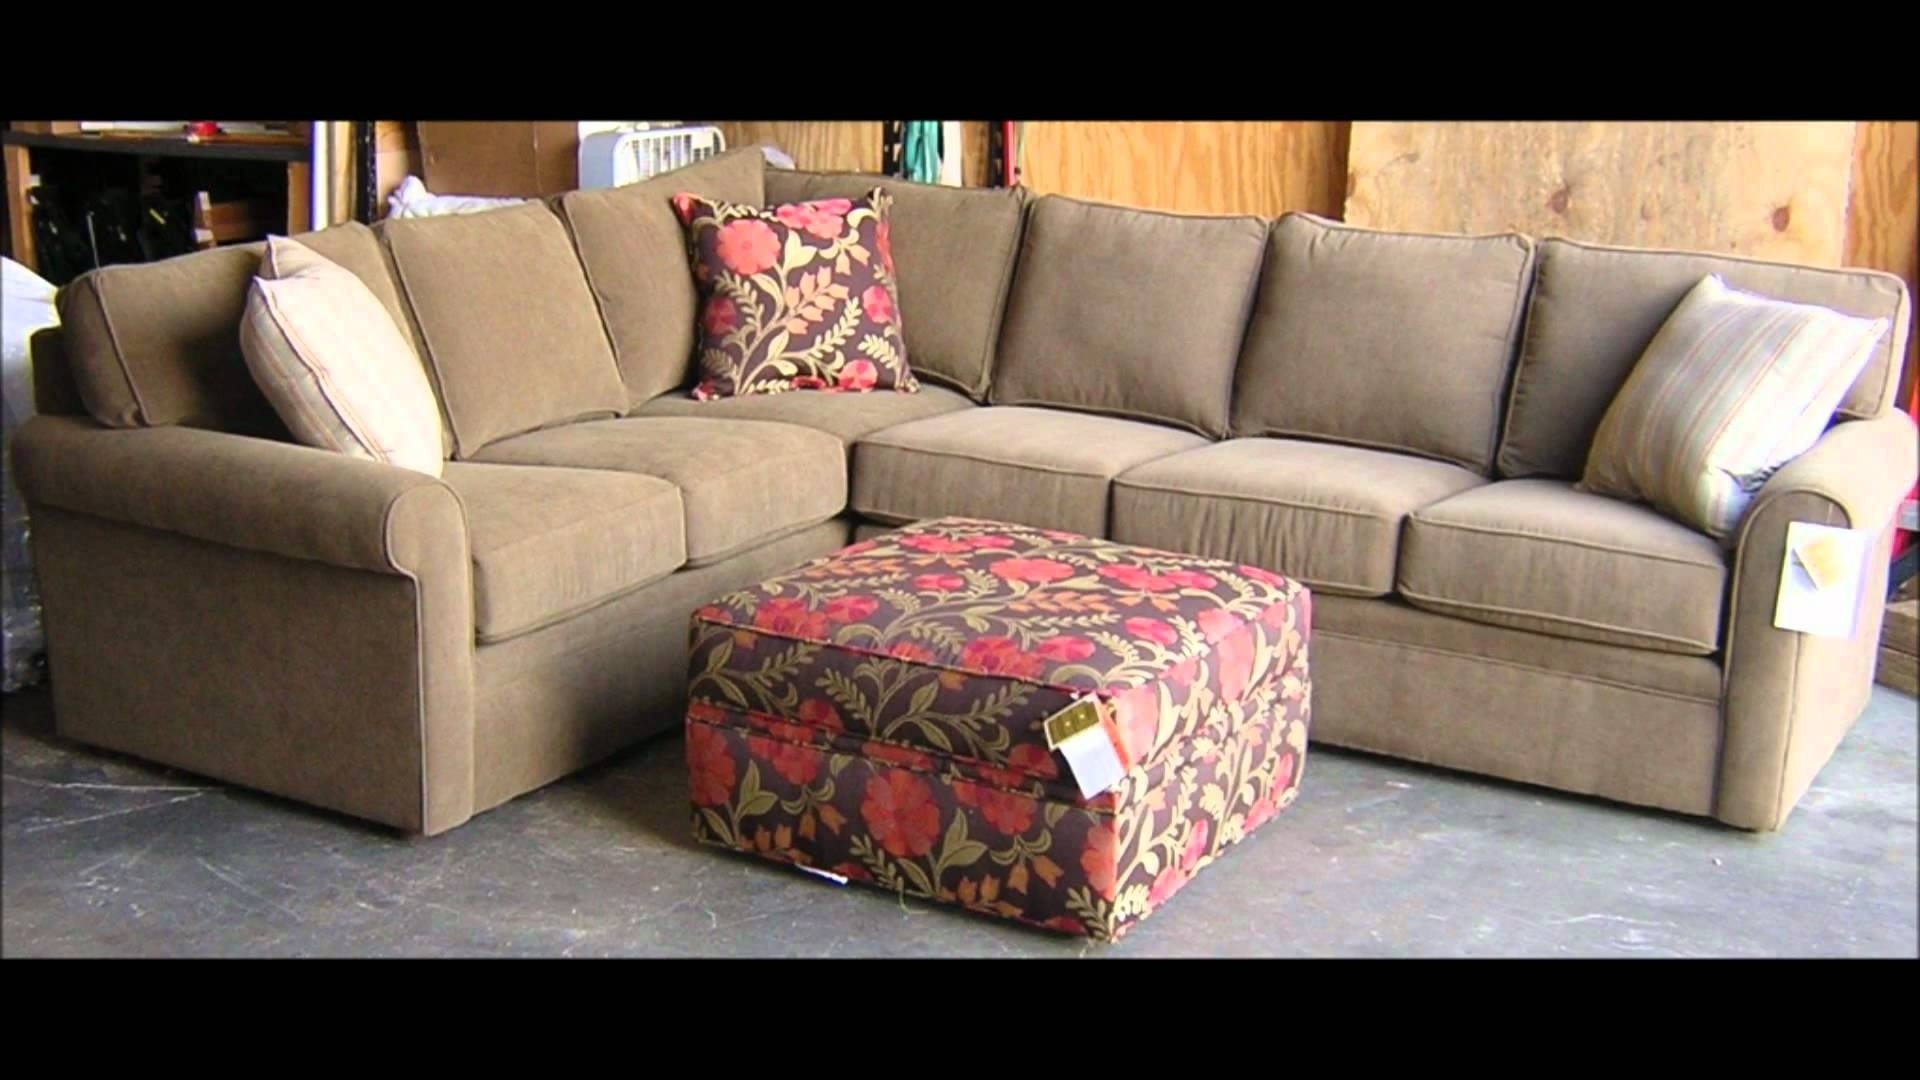 Furniture: Leather Furniture Hickory Nc | King Hickory Sofa Prices In Hickory Nc Sectional Sofas (View 6 of 10)